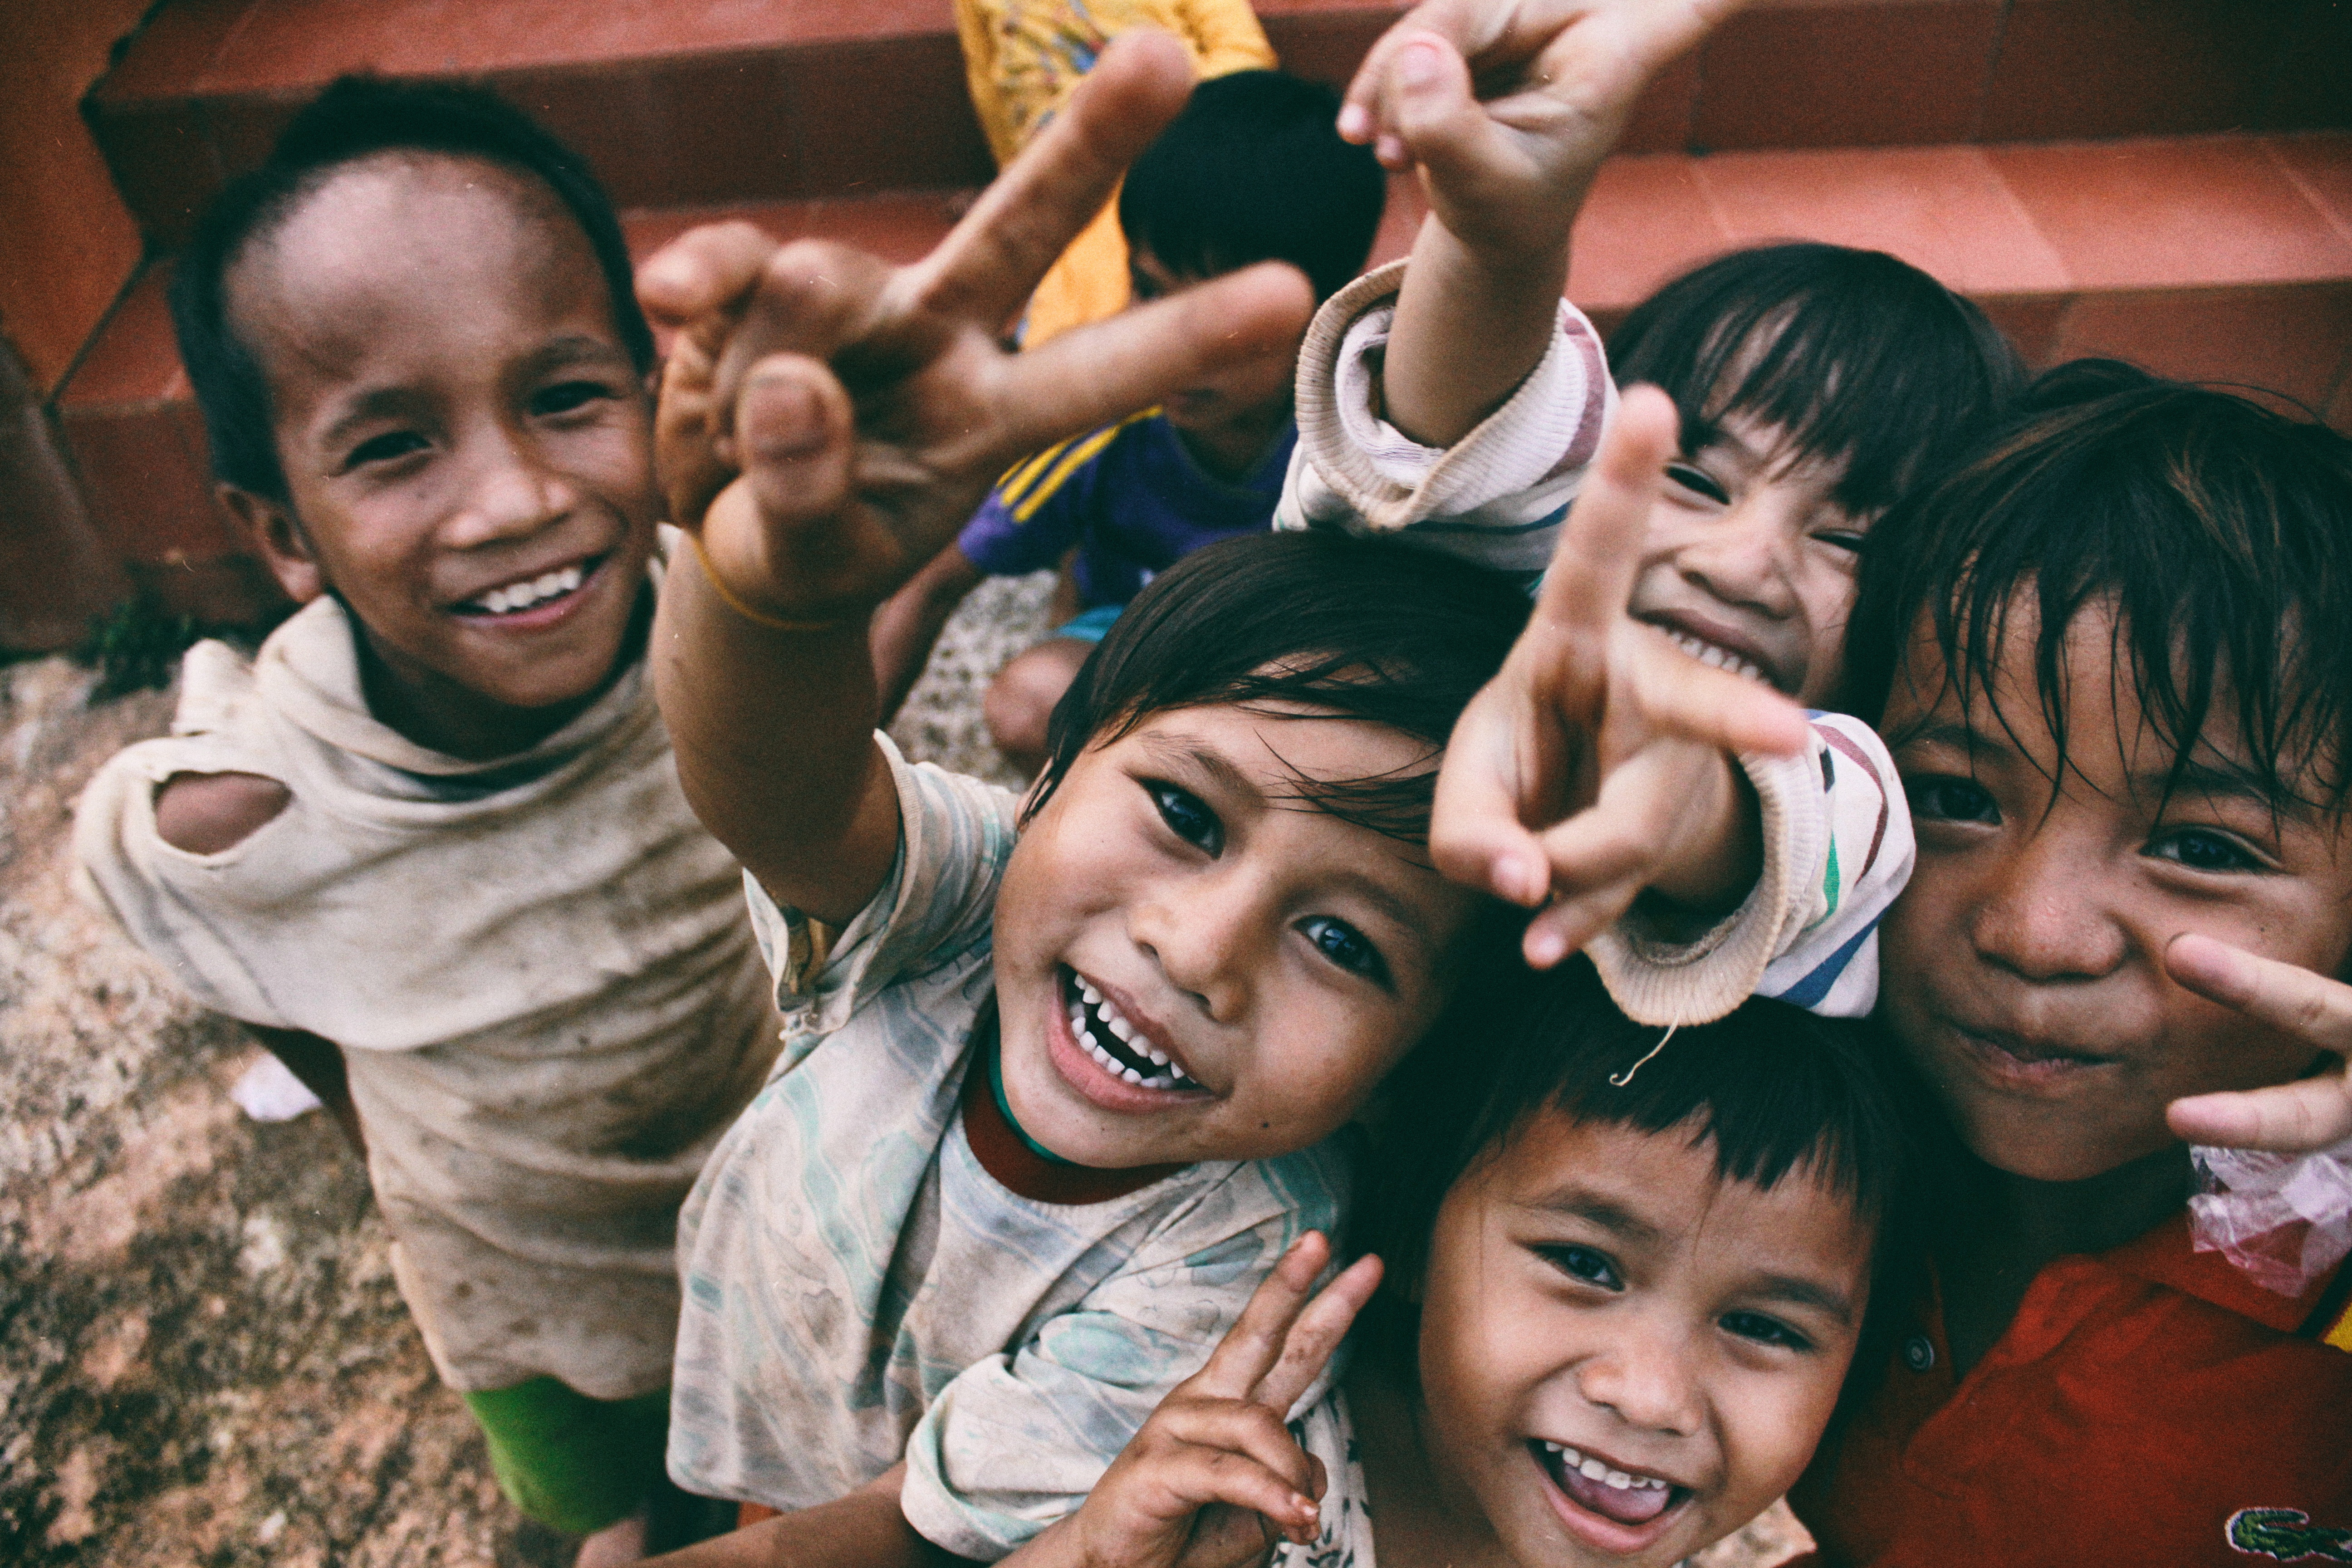 A group of children smiling for the camera and making peace signs with their fingers.